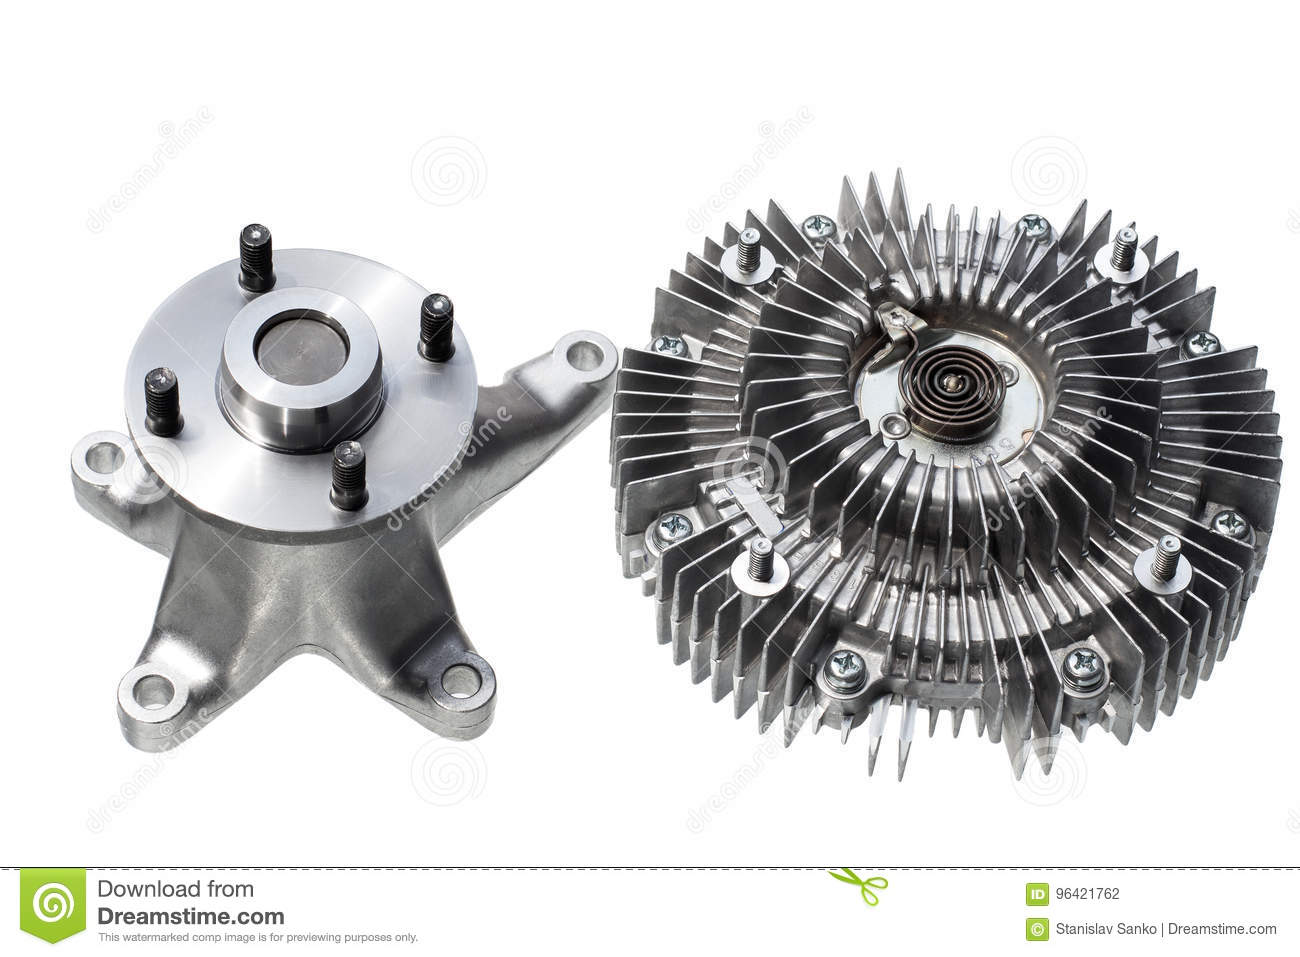 hight resolution of engine cooling fan clutch and bracket fan car engine